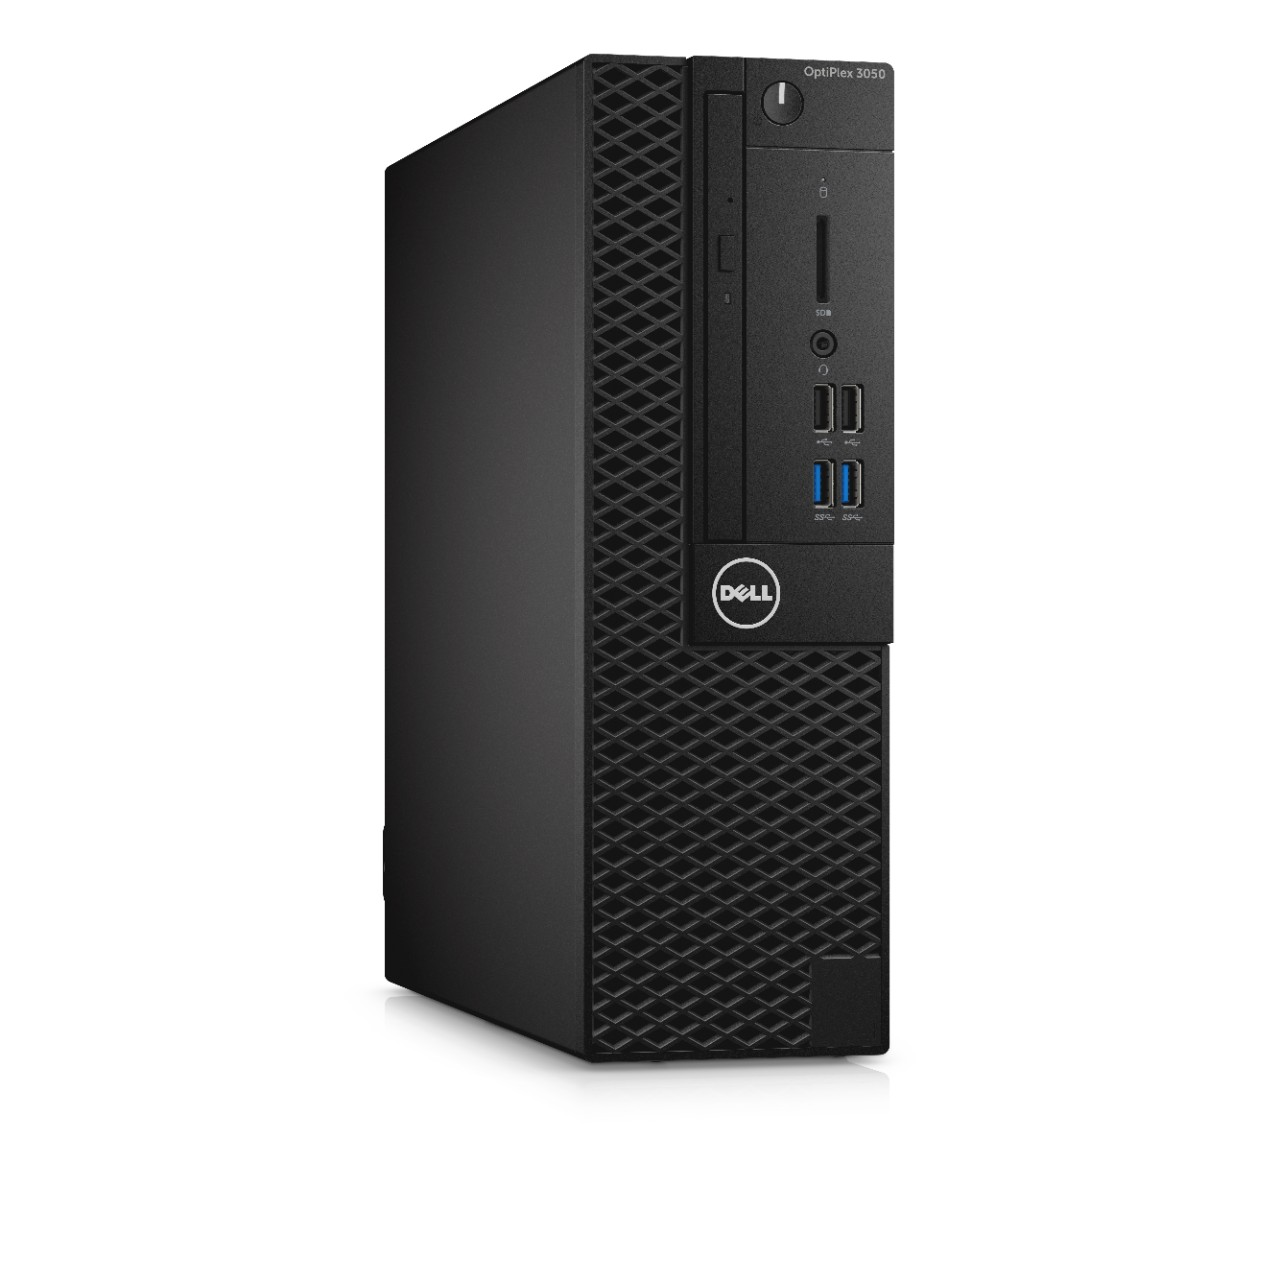 DELL OptiPlex SFF 3050 Core i3-7100/4GB/500GB/Intel HD/Win 10 Pro 64bit/3Yr NBD